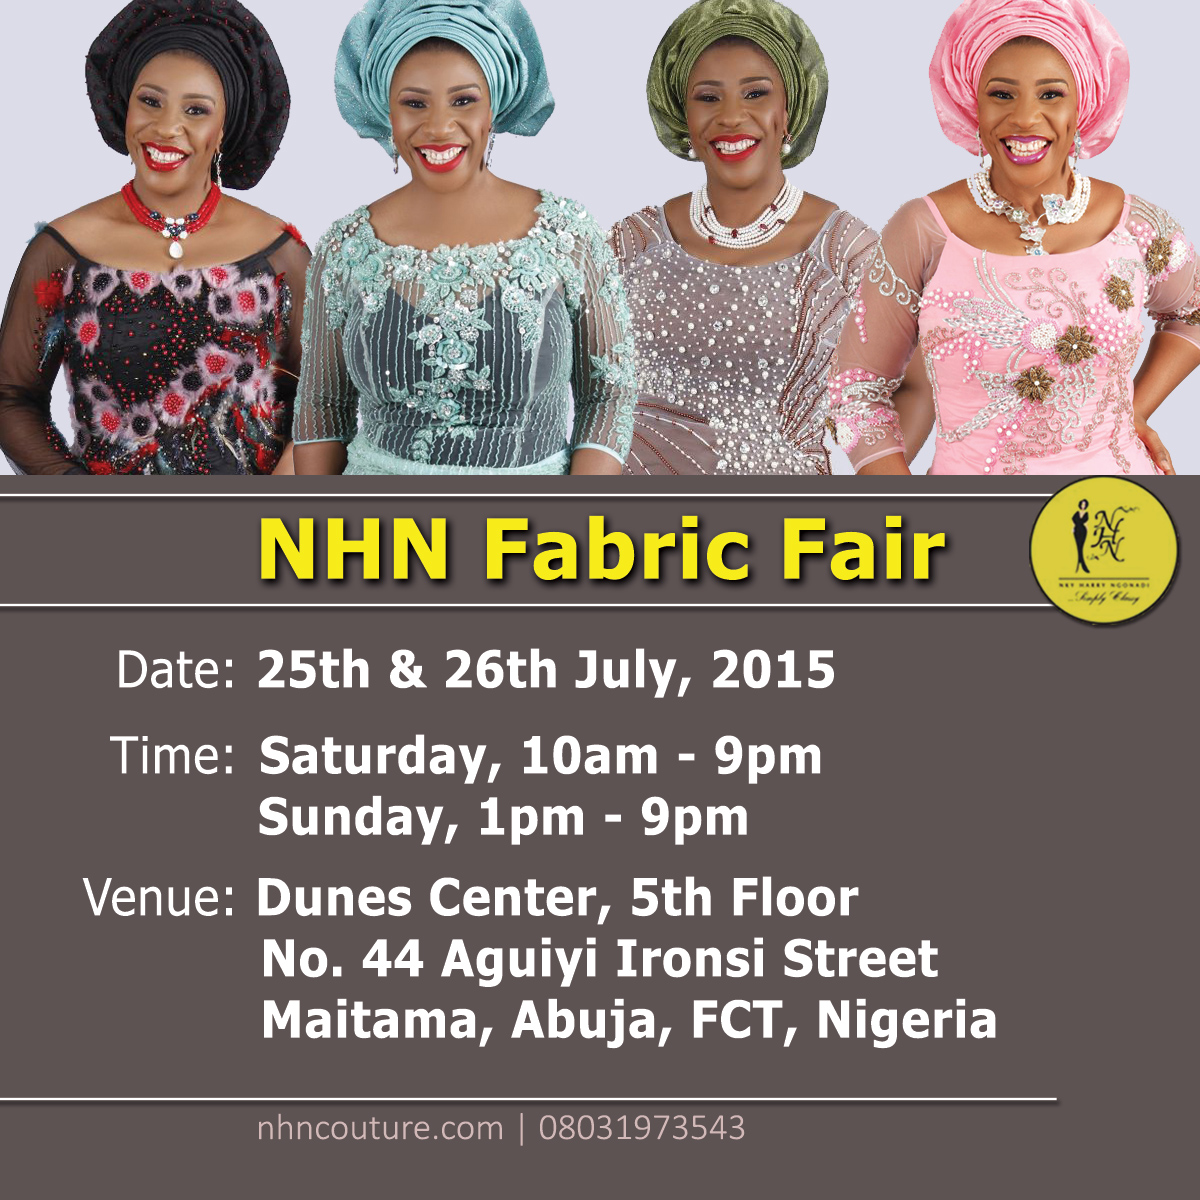 NHN-Fabric-Fair-Advert